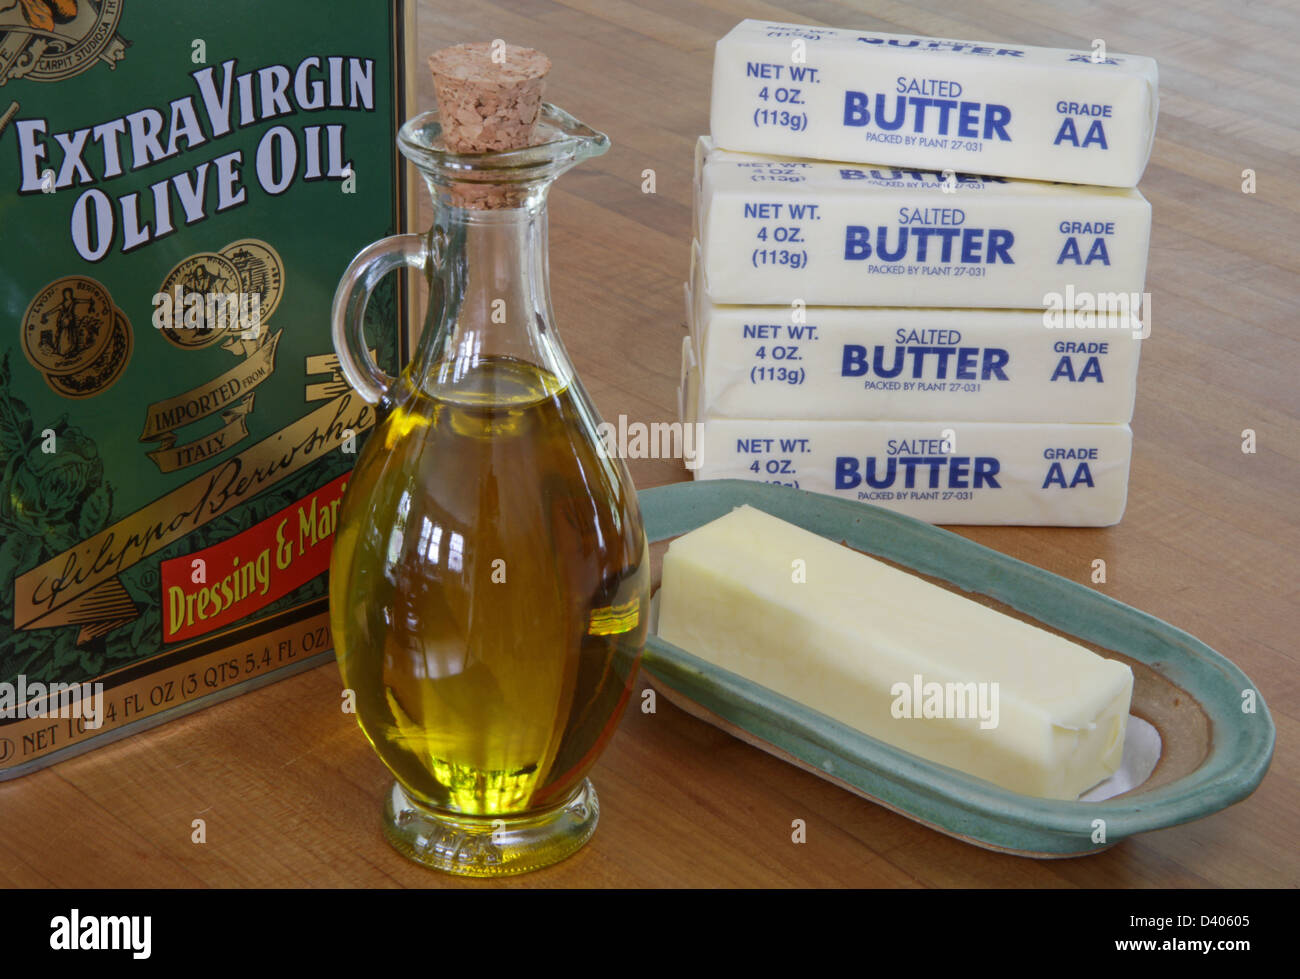 butter and olive oil Find information about all of our farm-fresh dairy products including butter, cheese, milk, half and half, and eggs.